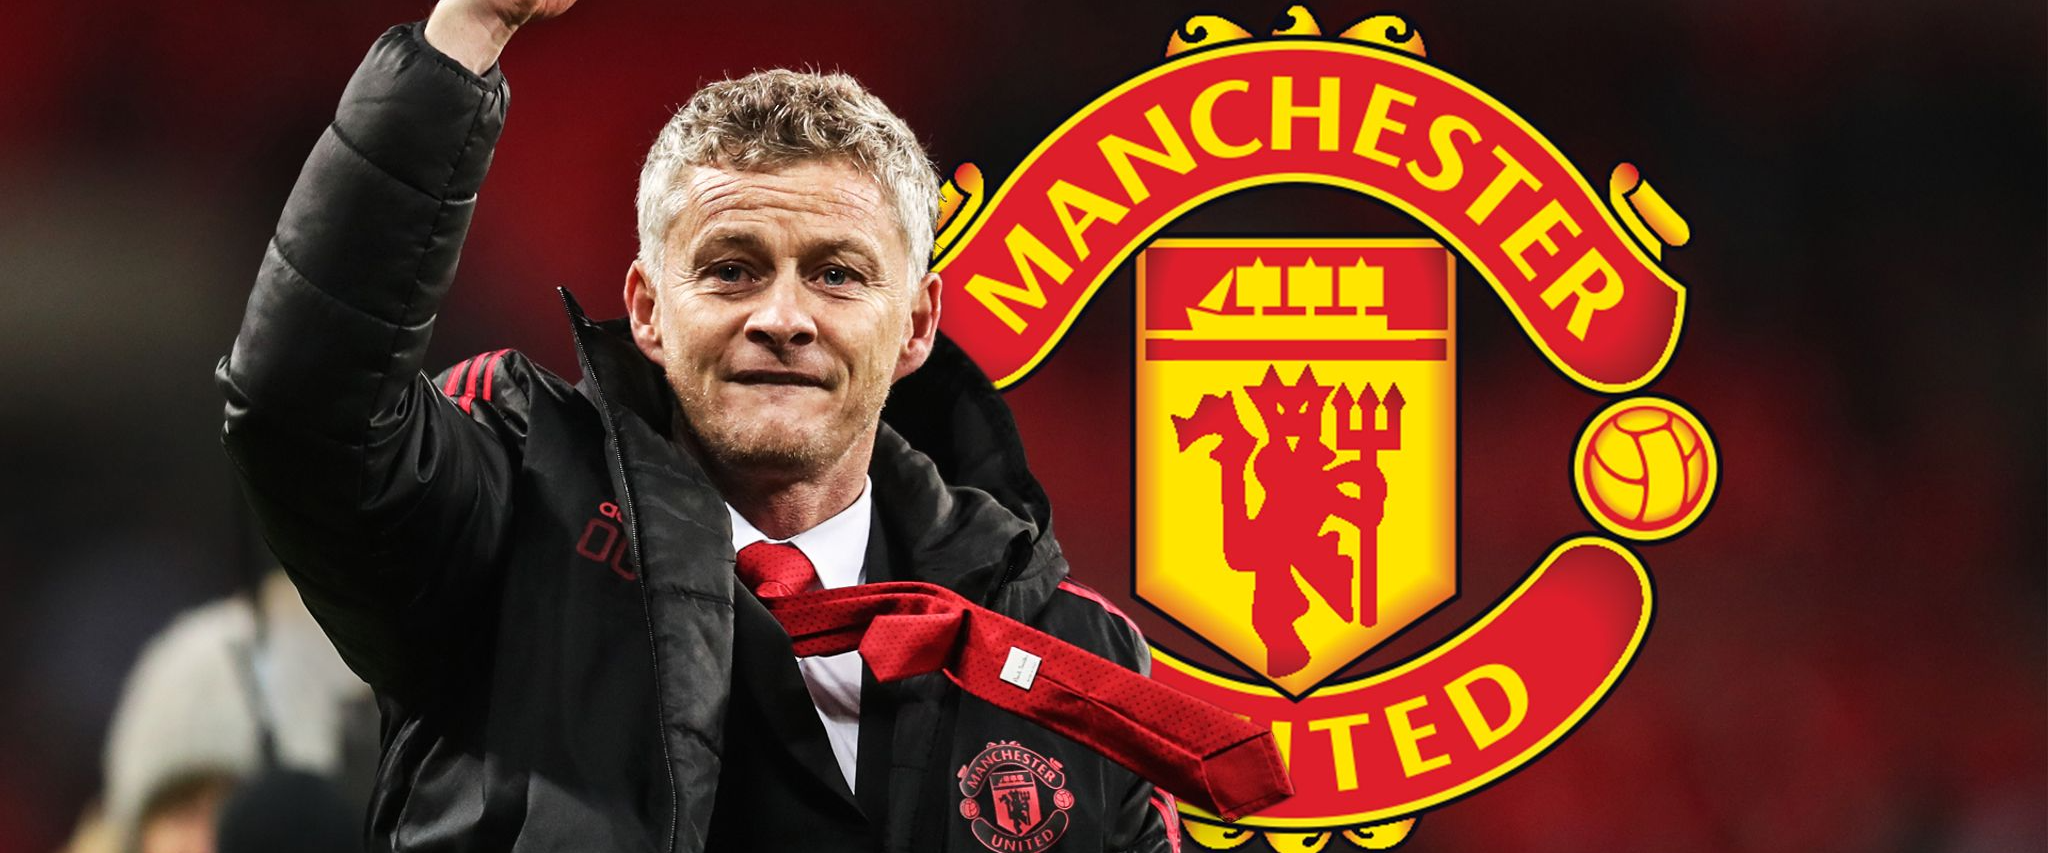 Is Ole Gunnar Solskjær still the right man for Manchester United?